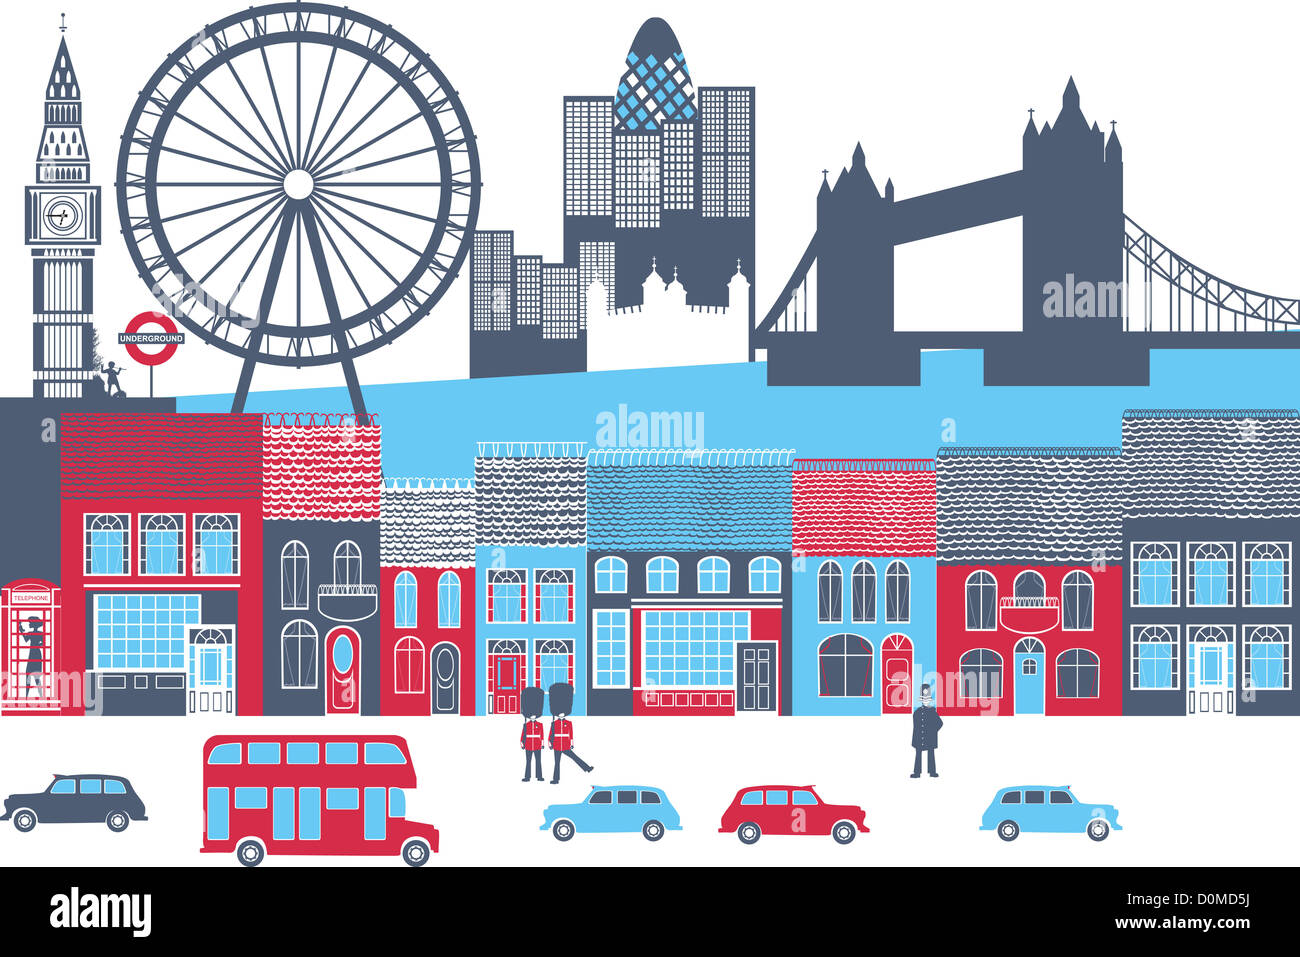 Montage of landmarks in a city, London, England - Stock Image